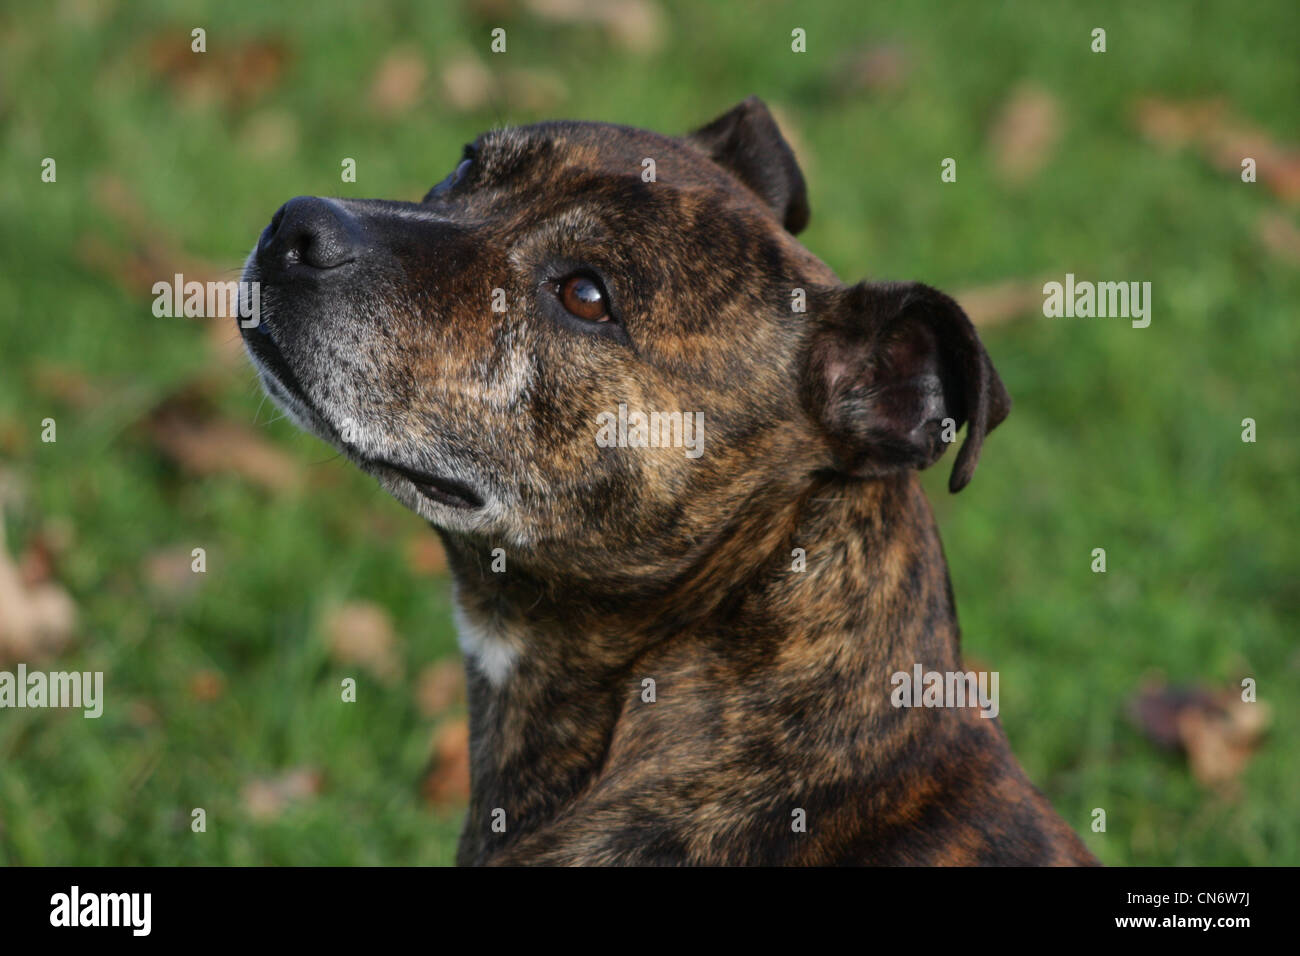 Brindle staffordshire bull terrier - Stock Image